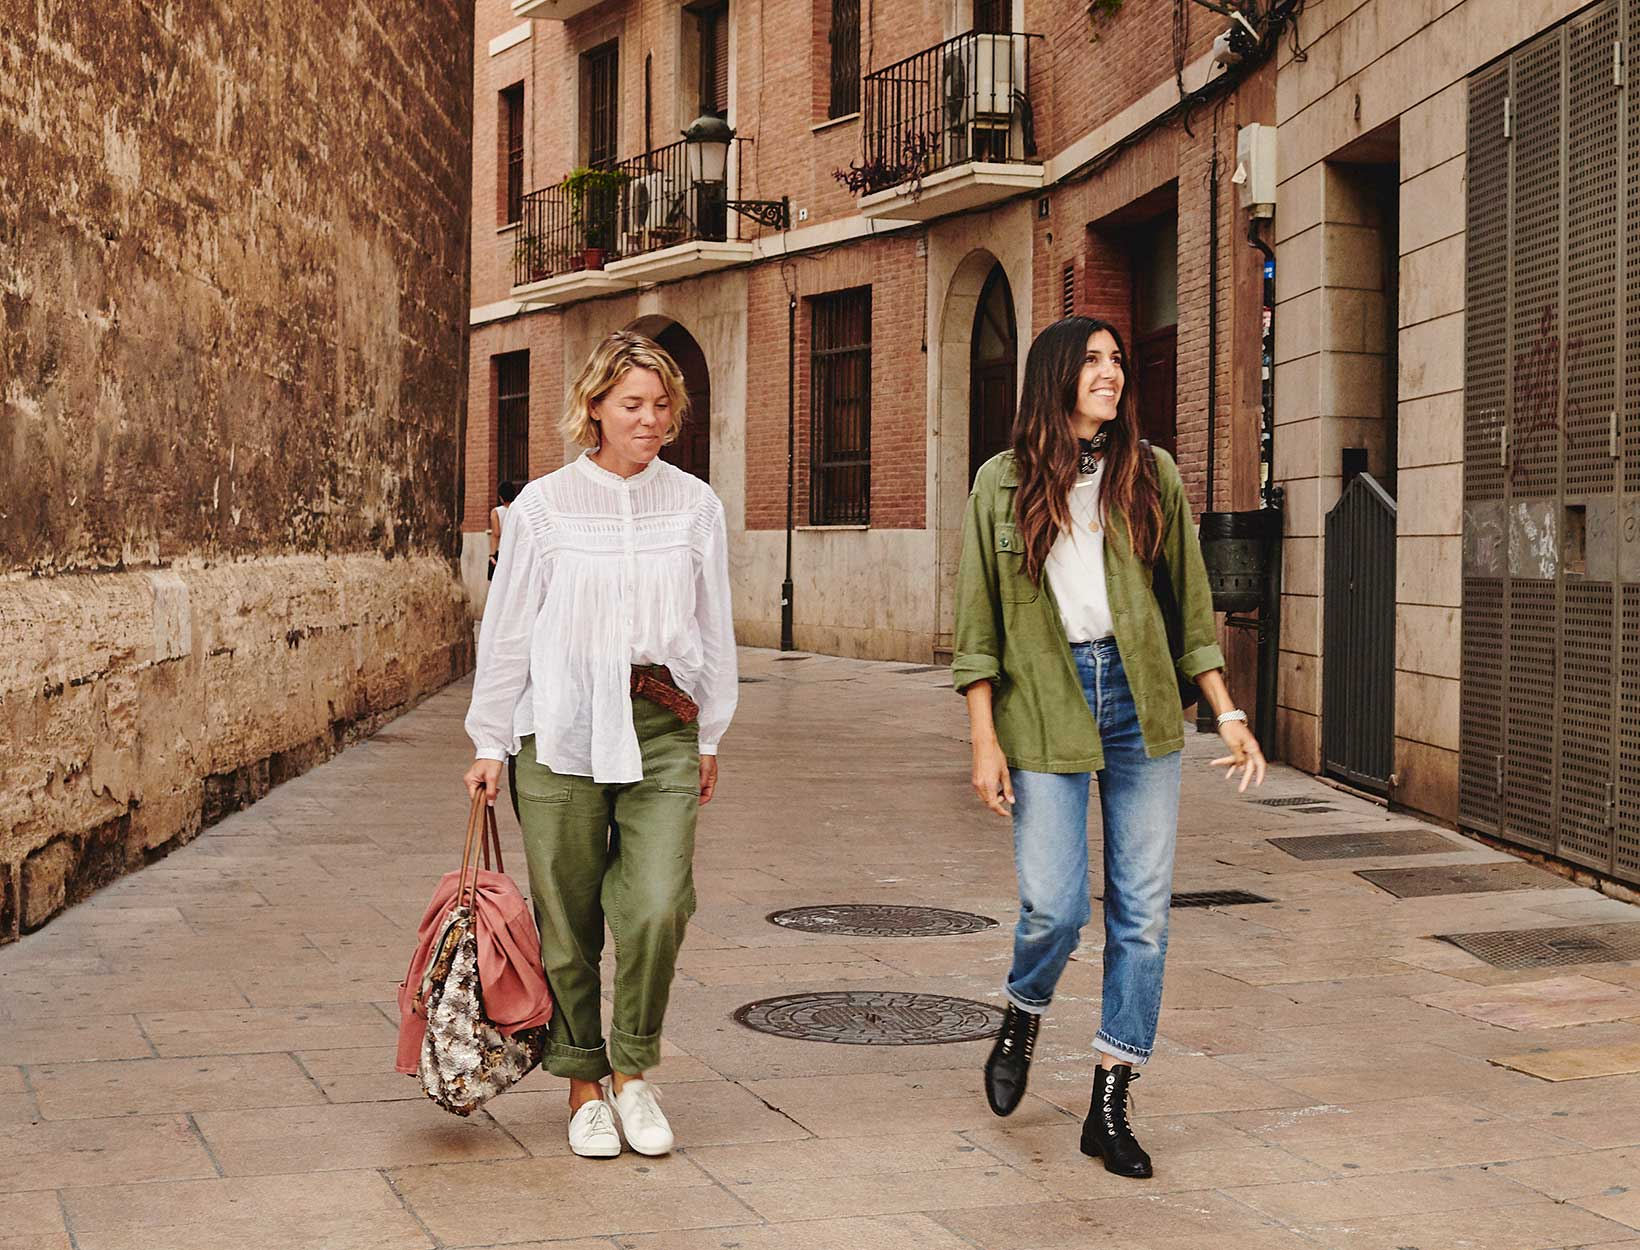 women walking in spain